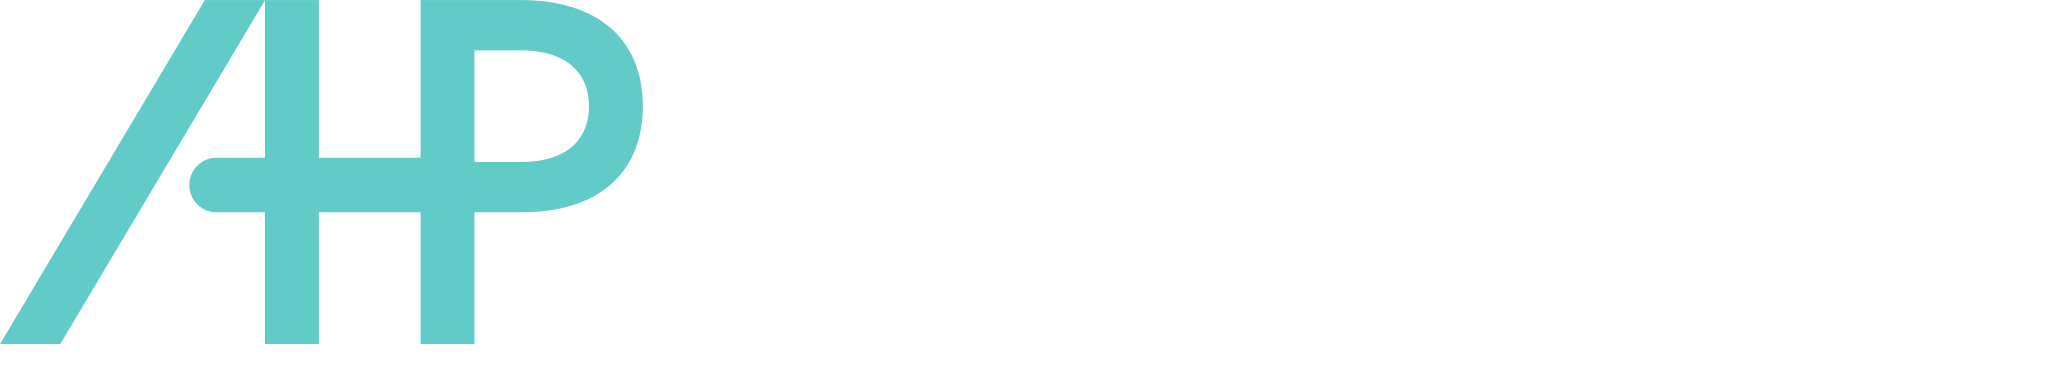 Andrew Harvey Psychotherapy, Counselling and Personal Development